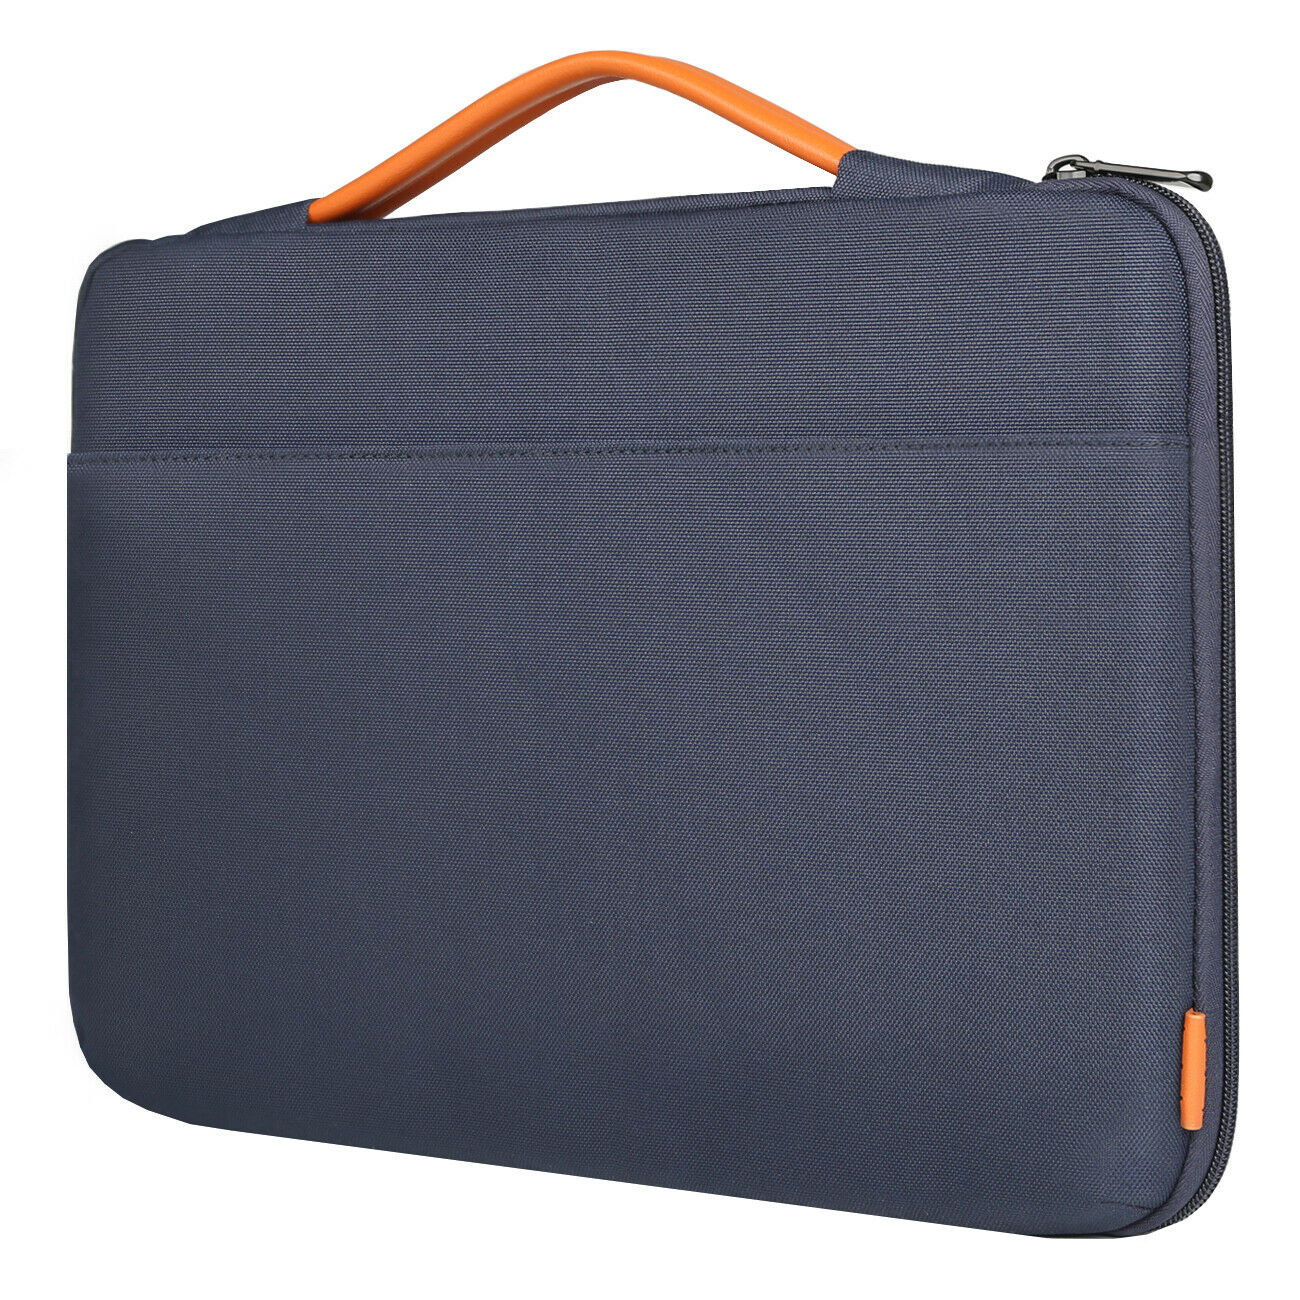 Inateck 15-15.6 Inch Shockproof Laptop Sleeve Case Briefcase Bag for Laptops. Buy it now for 19.99